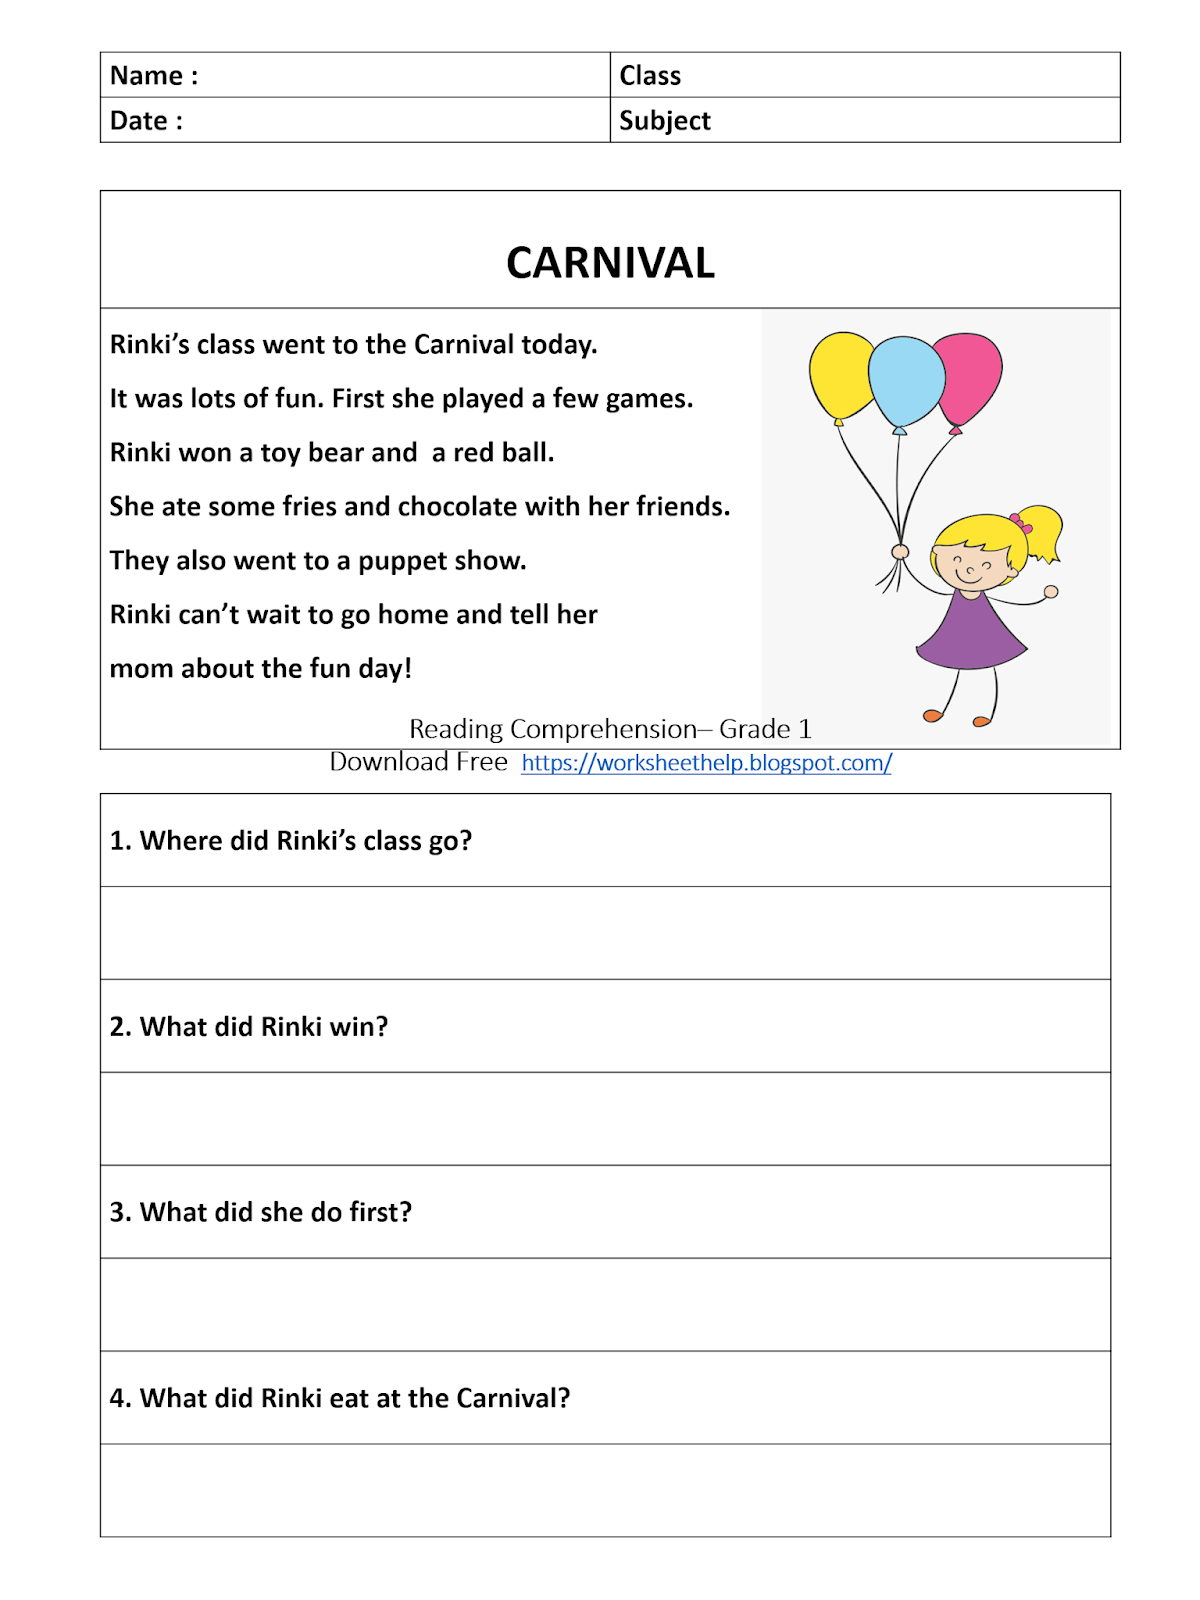 Clipart Creationz: Reading Comprehension Worksheet - Grade 1 - Carnival [ 1600 x 1200 Pixel ]